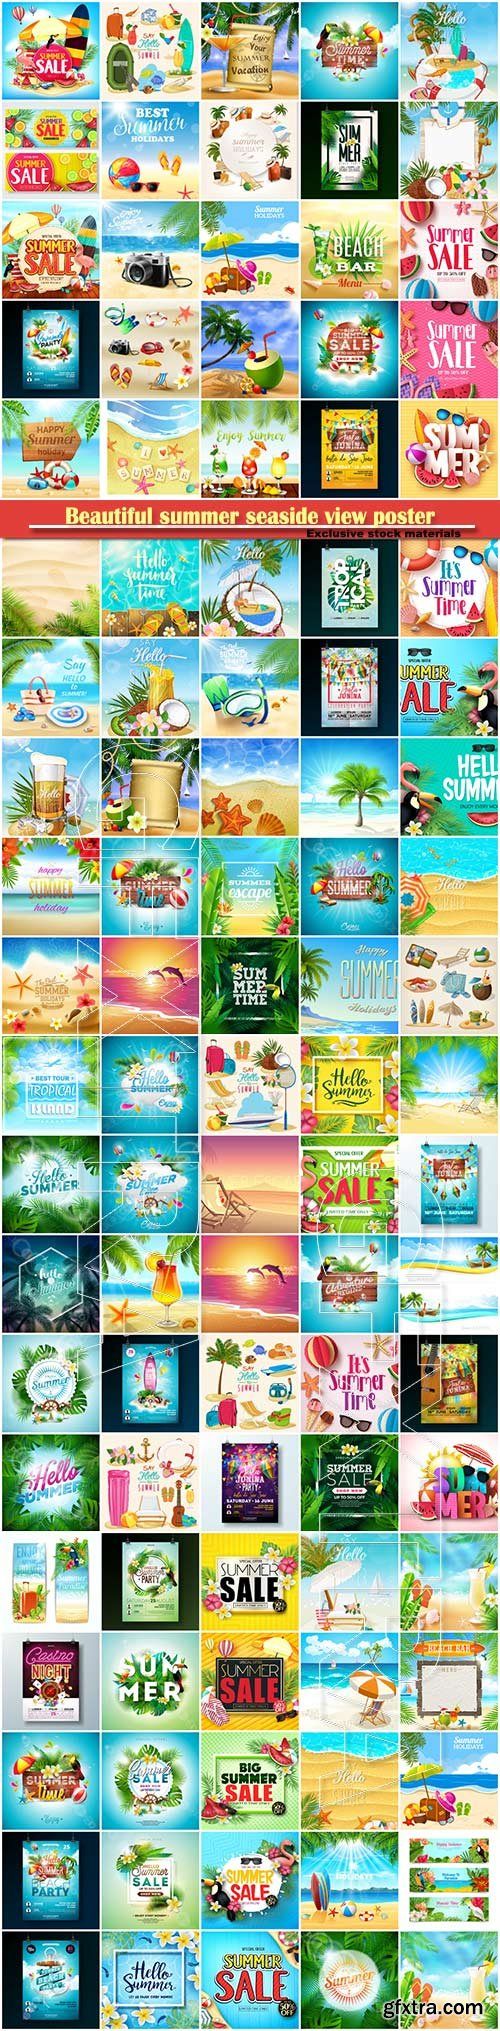 Beautiful summer seaside view poster, tropical sea, travel background vector illustration